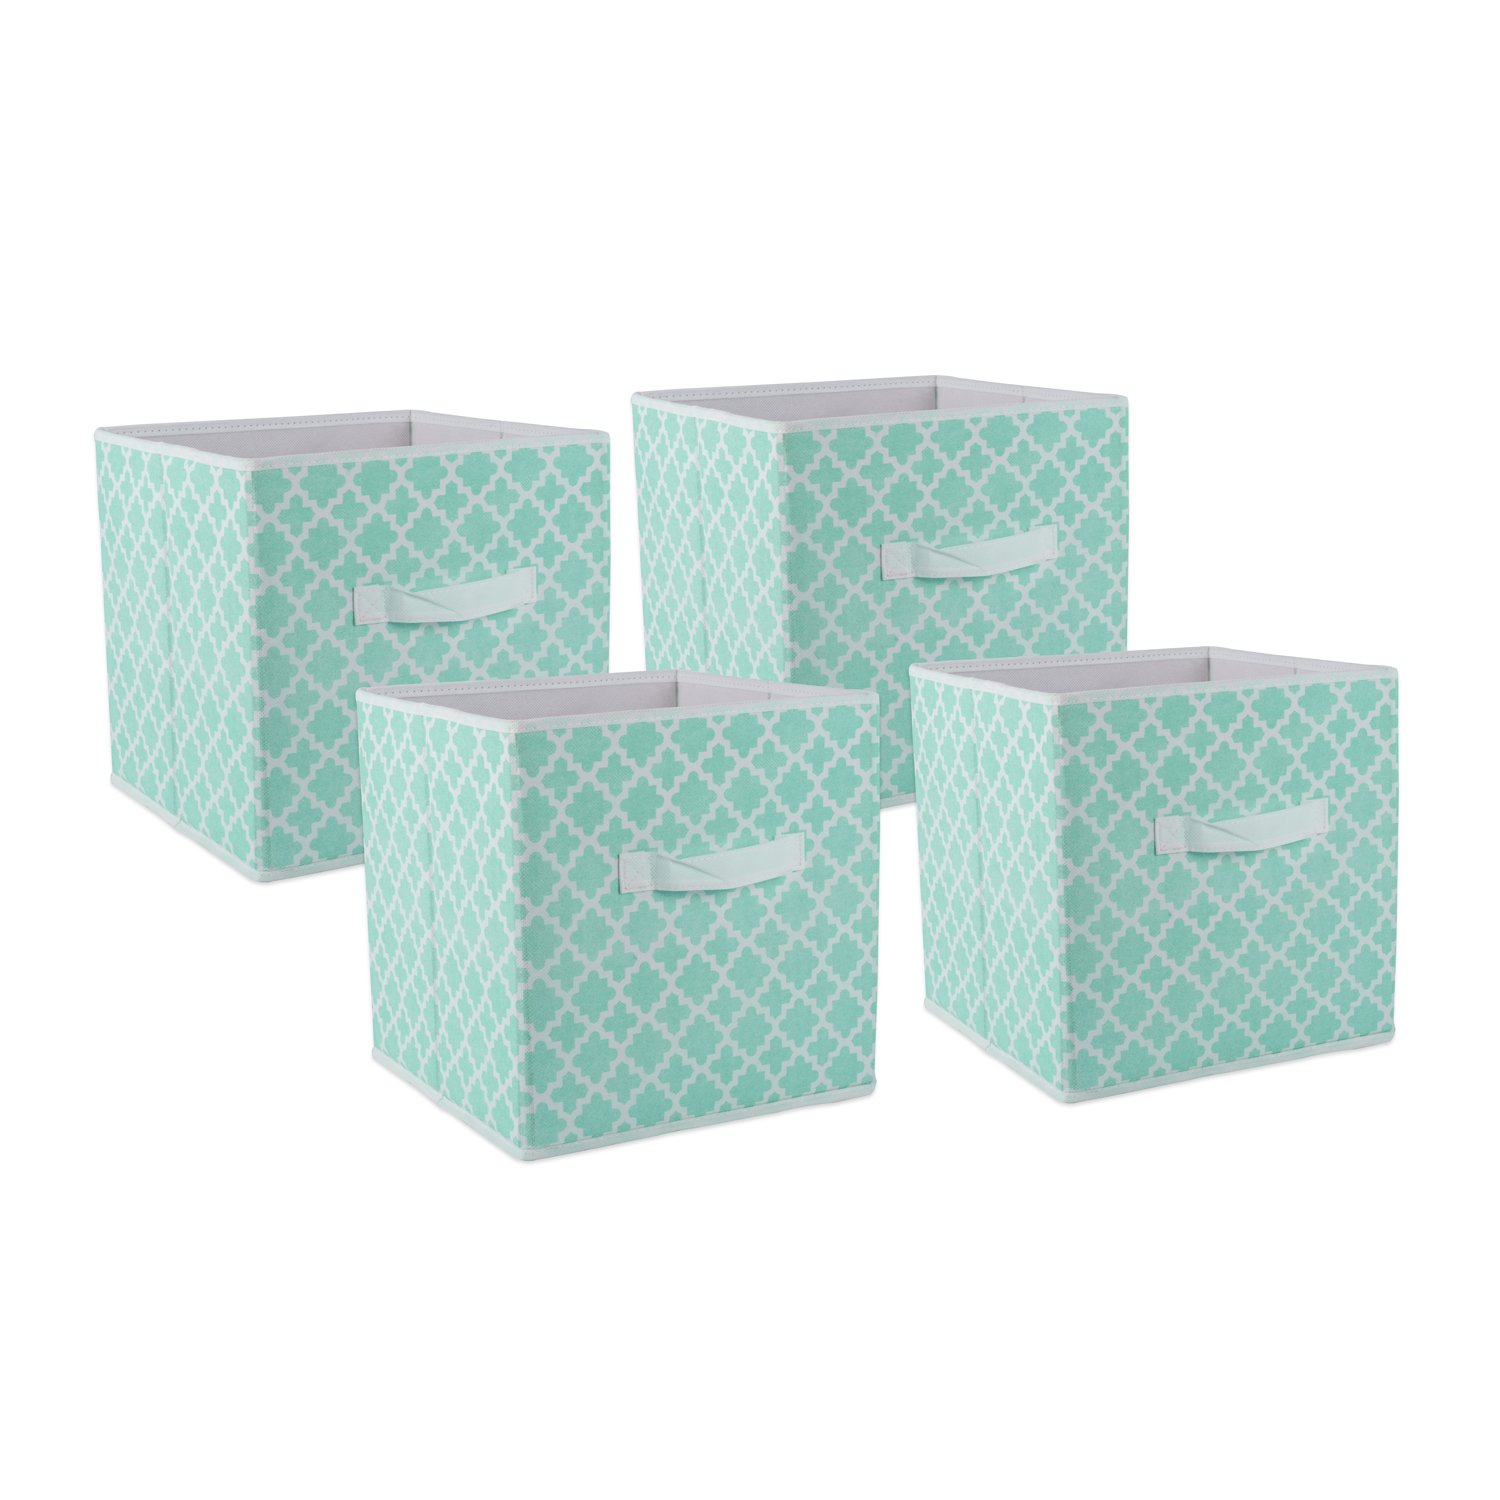 DII Fabric Storage Bins for Nursery, Offices, Home Organization, Containers are Made to Fit Standard Cube Organizers (11x11x11) Lattice Aqua - Set of 4